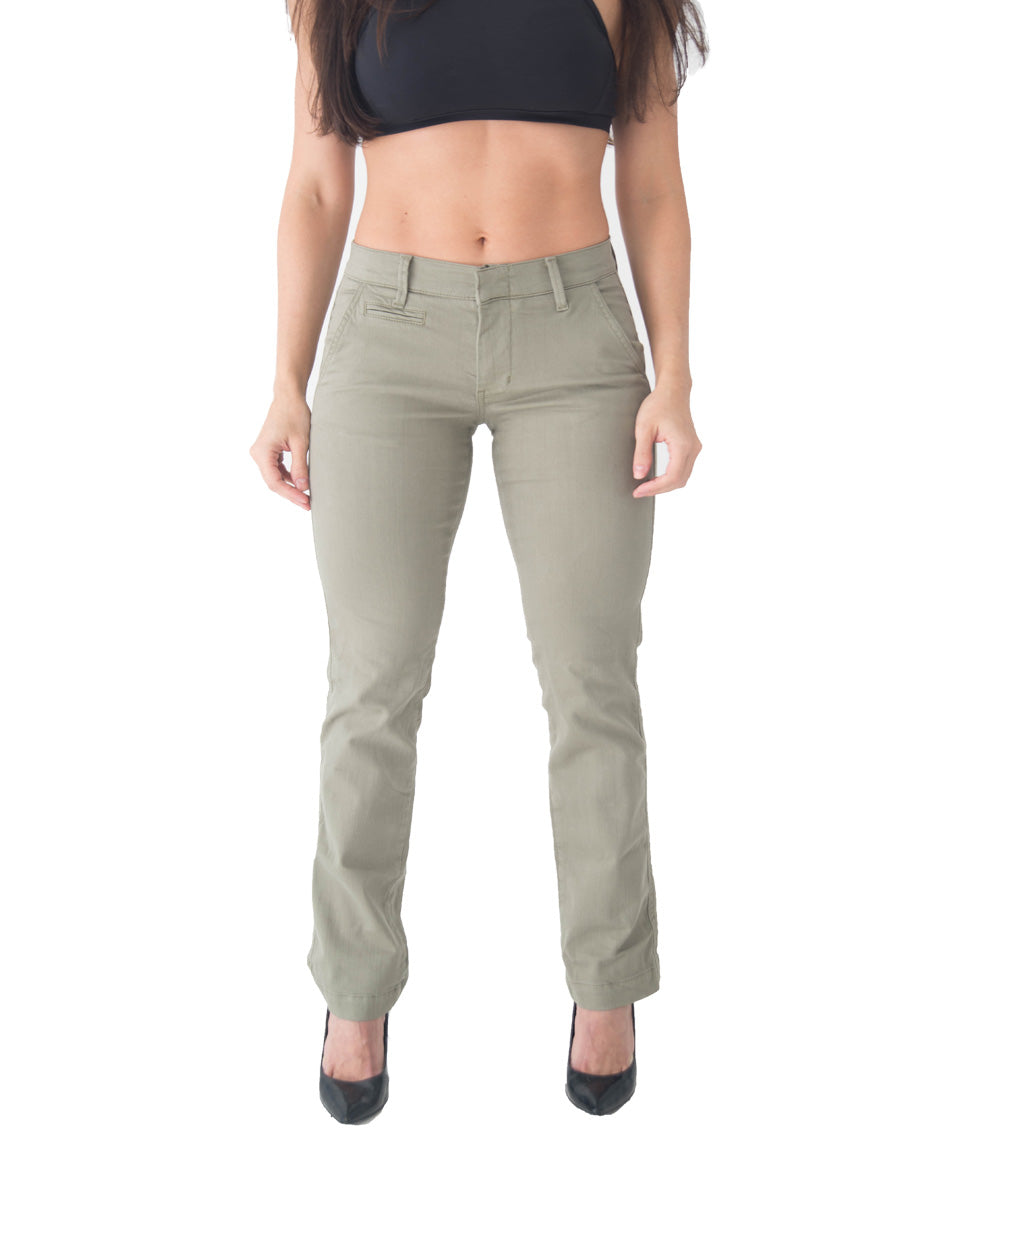 Women's Athletic Fit Chinos | Keirin Cut Chinos - Army Green